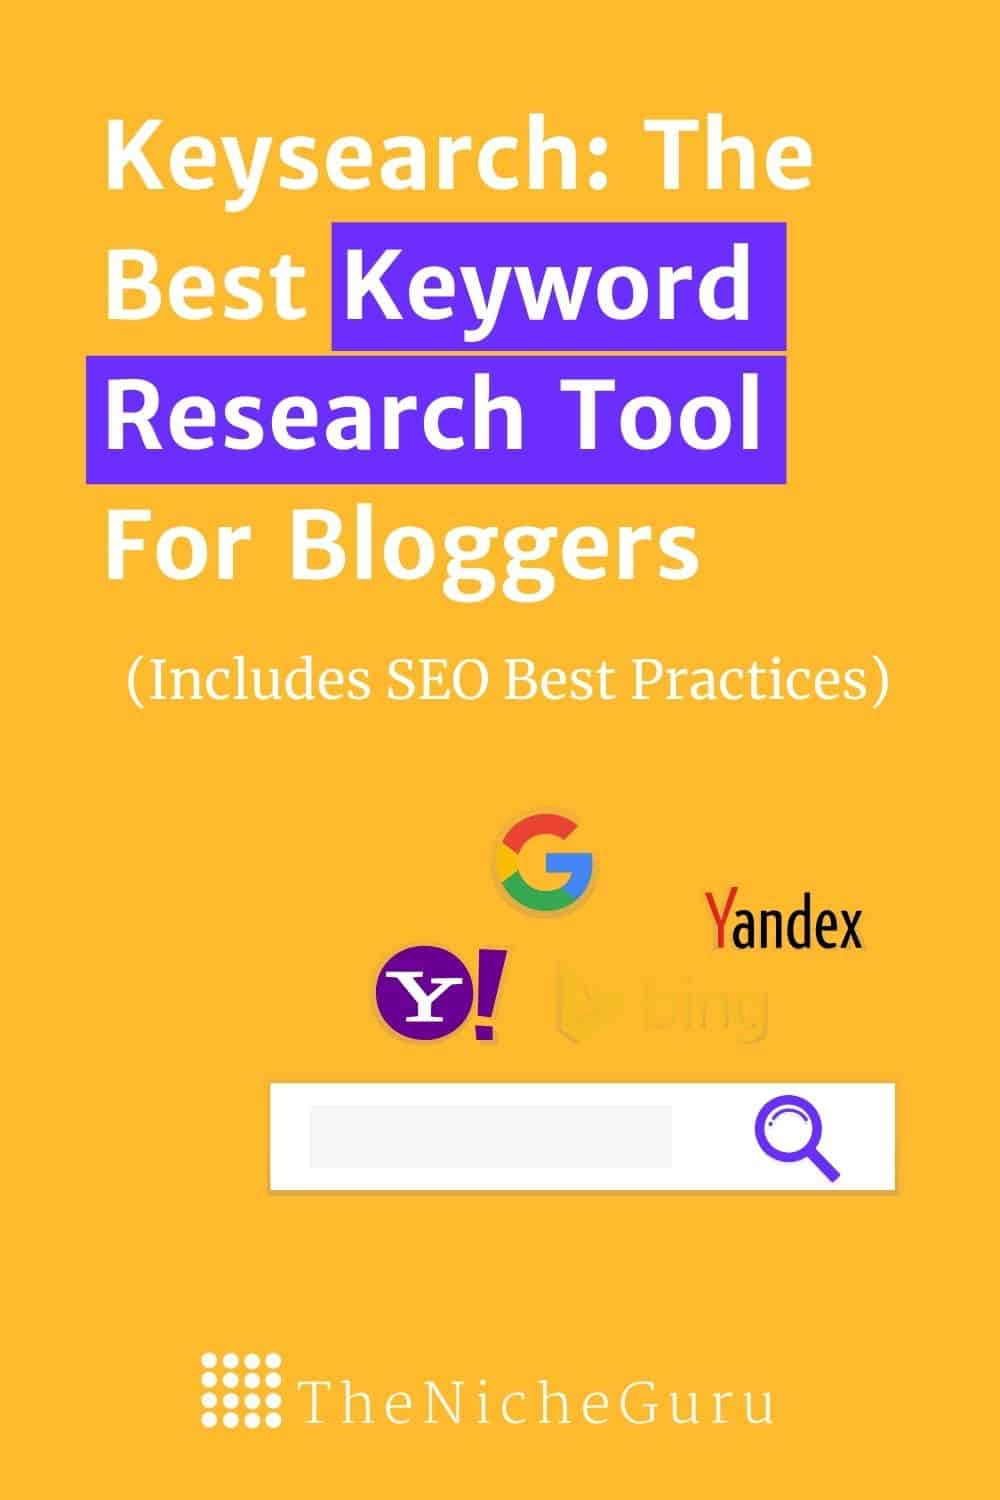 Learn how to do Keyword Research for SEO with this tips.  Use one of the most powerful and affordable keyword tools and start driving organic traffic to your site.  #SEOTips #SEO #Keywords #KeywordResearch #Keysearch #KeywordTools